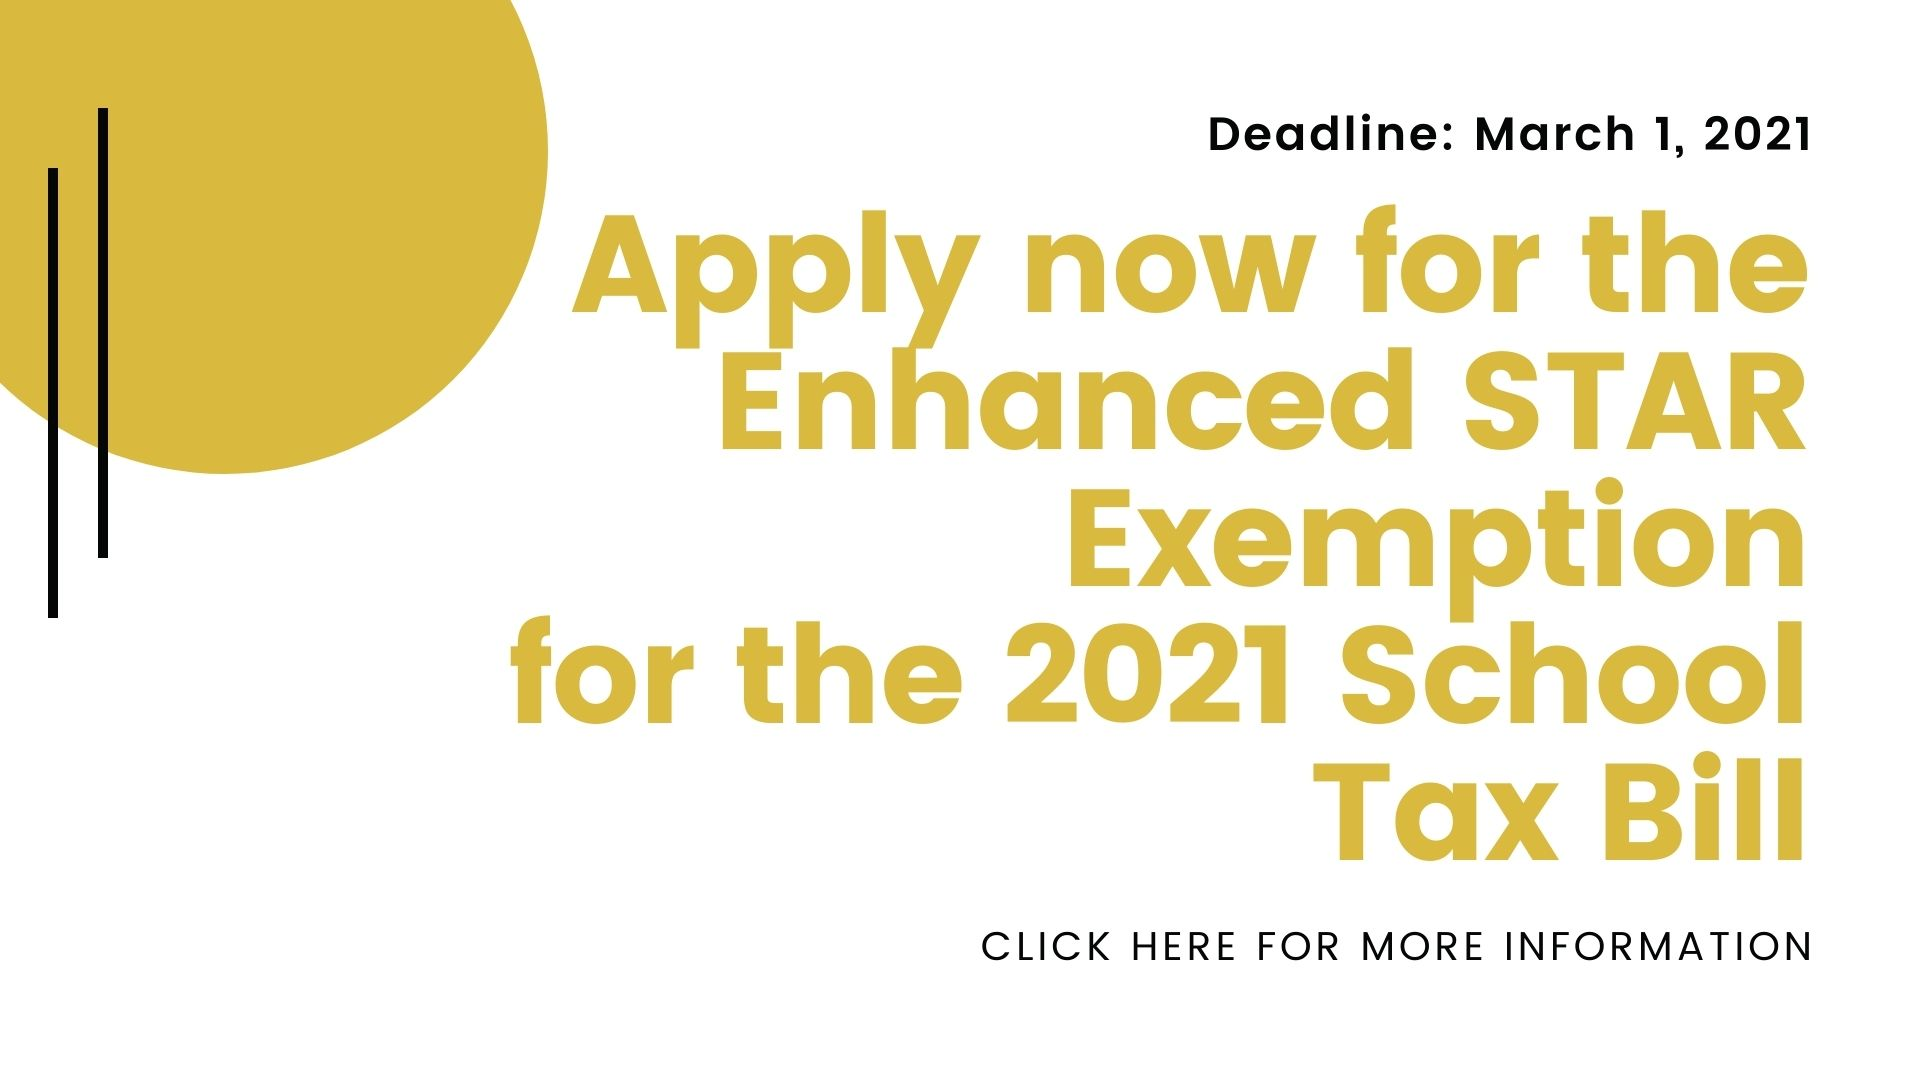 Star Exemption 2021 Due